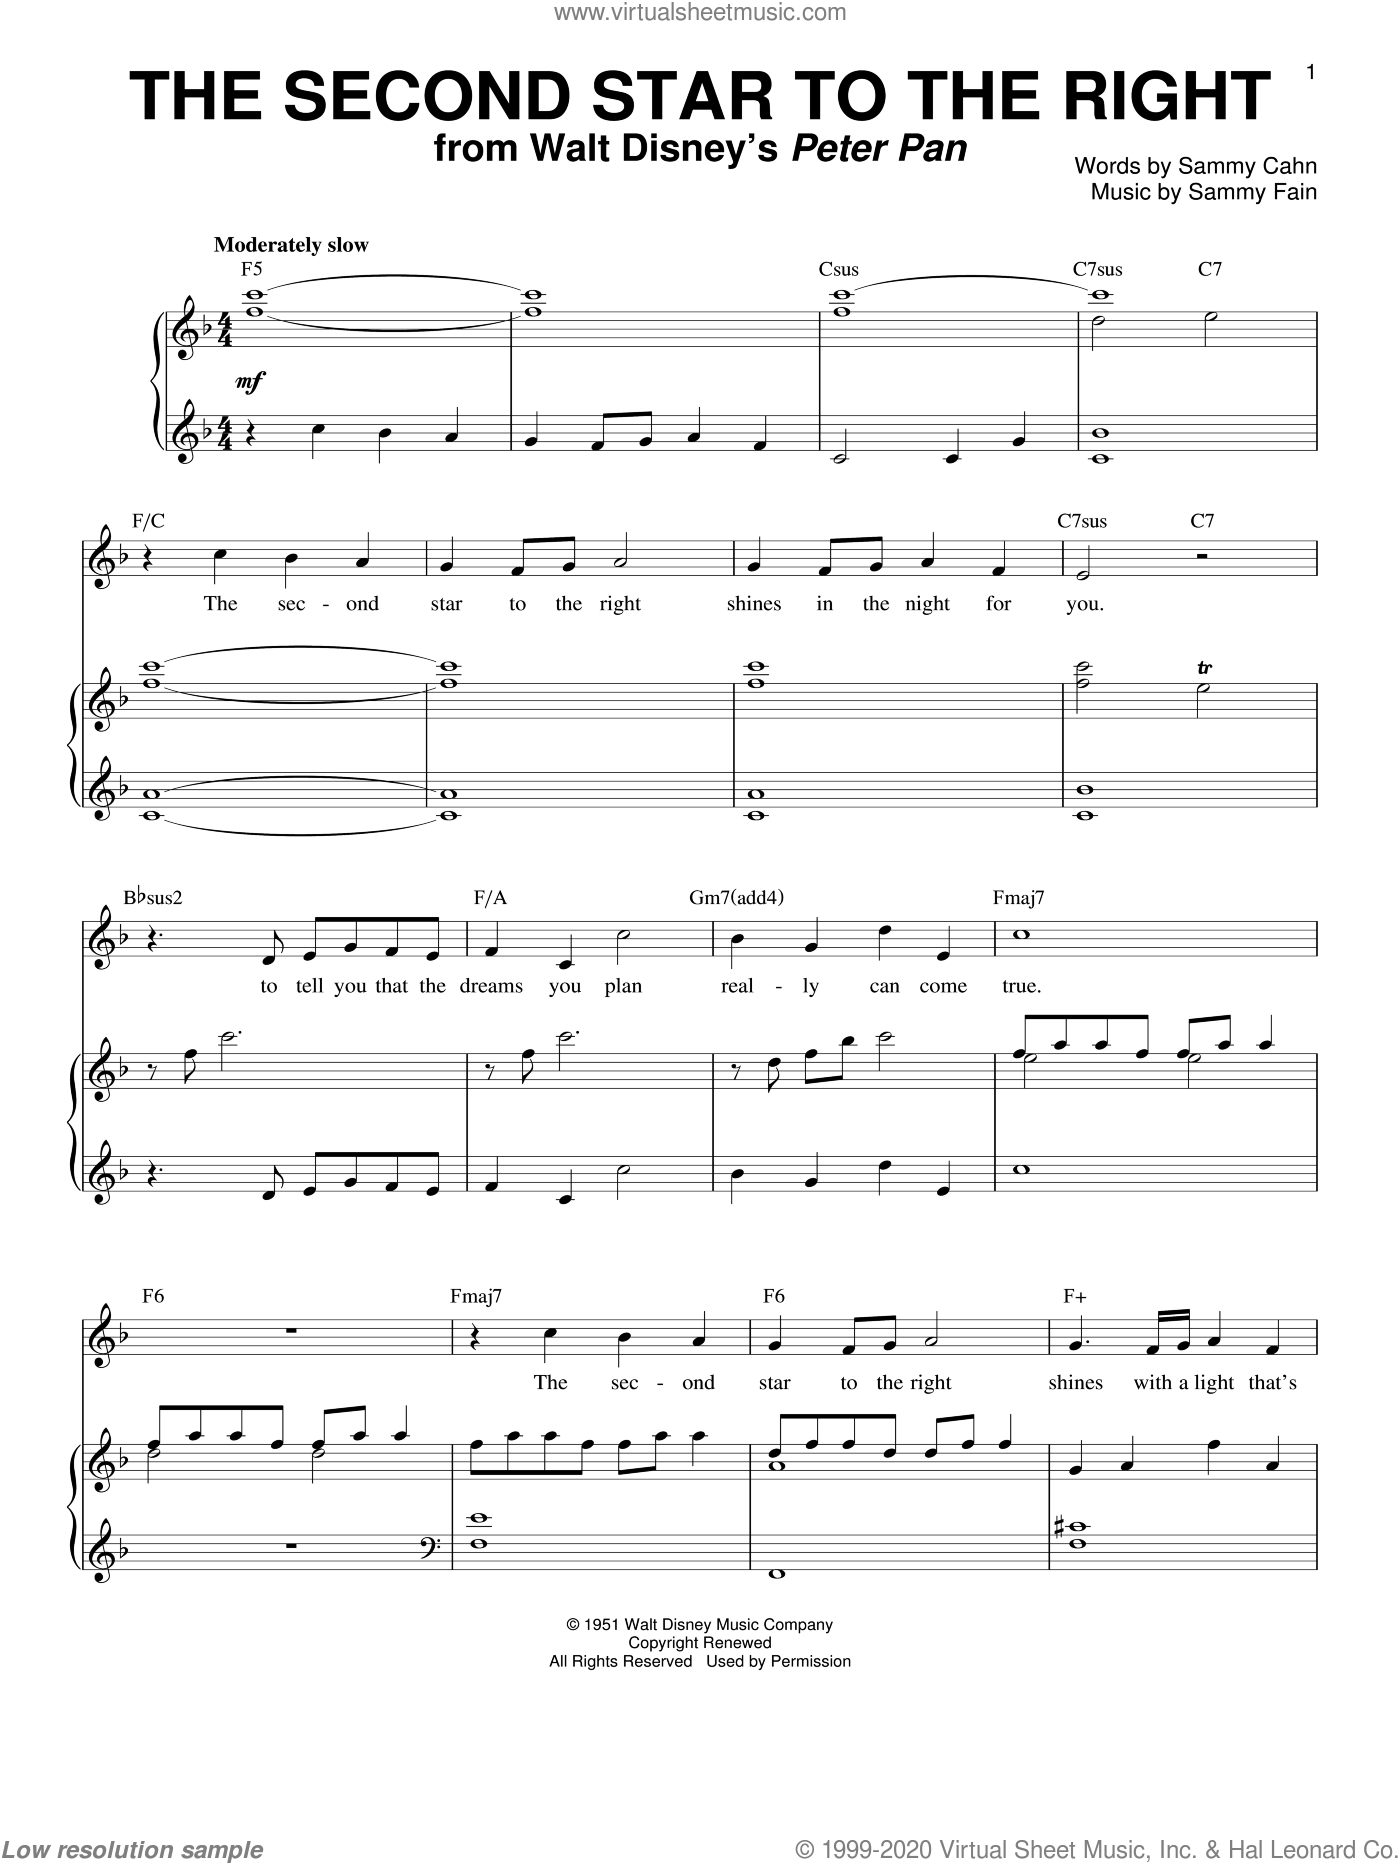 The Second Star To The Right sheet music for voice and piano by Doris Day, Sammy Cahn and Sammy Fain, intermediate skill level